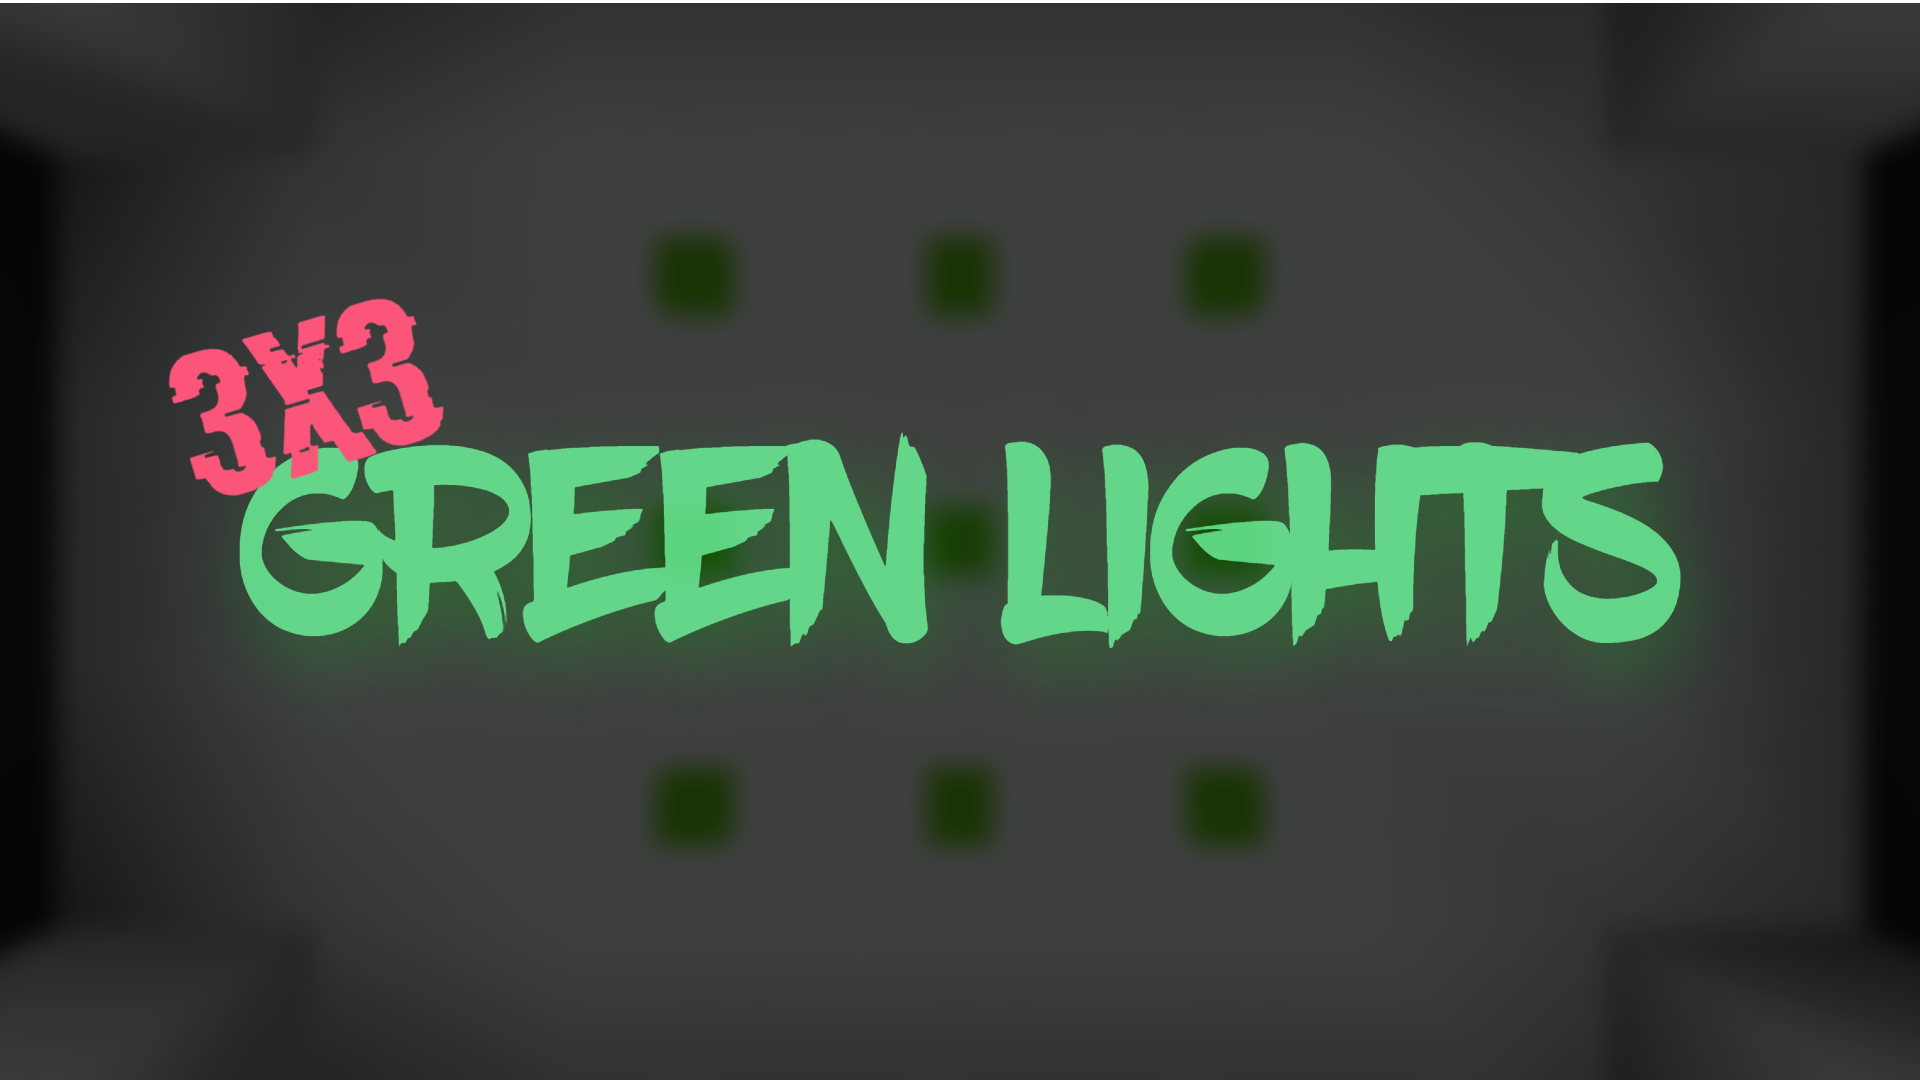 Download Green Lights 3x3 for Minecraft 1.16.5